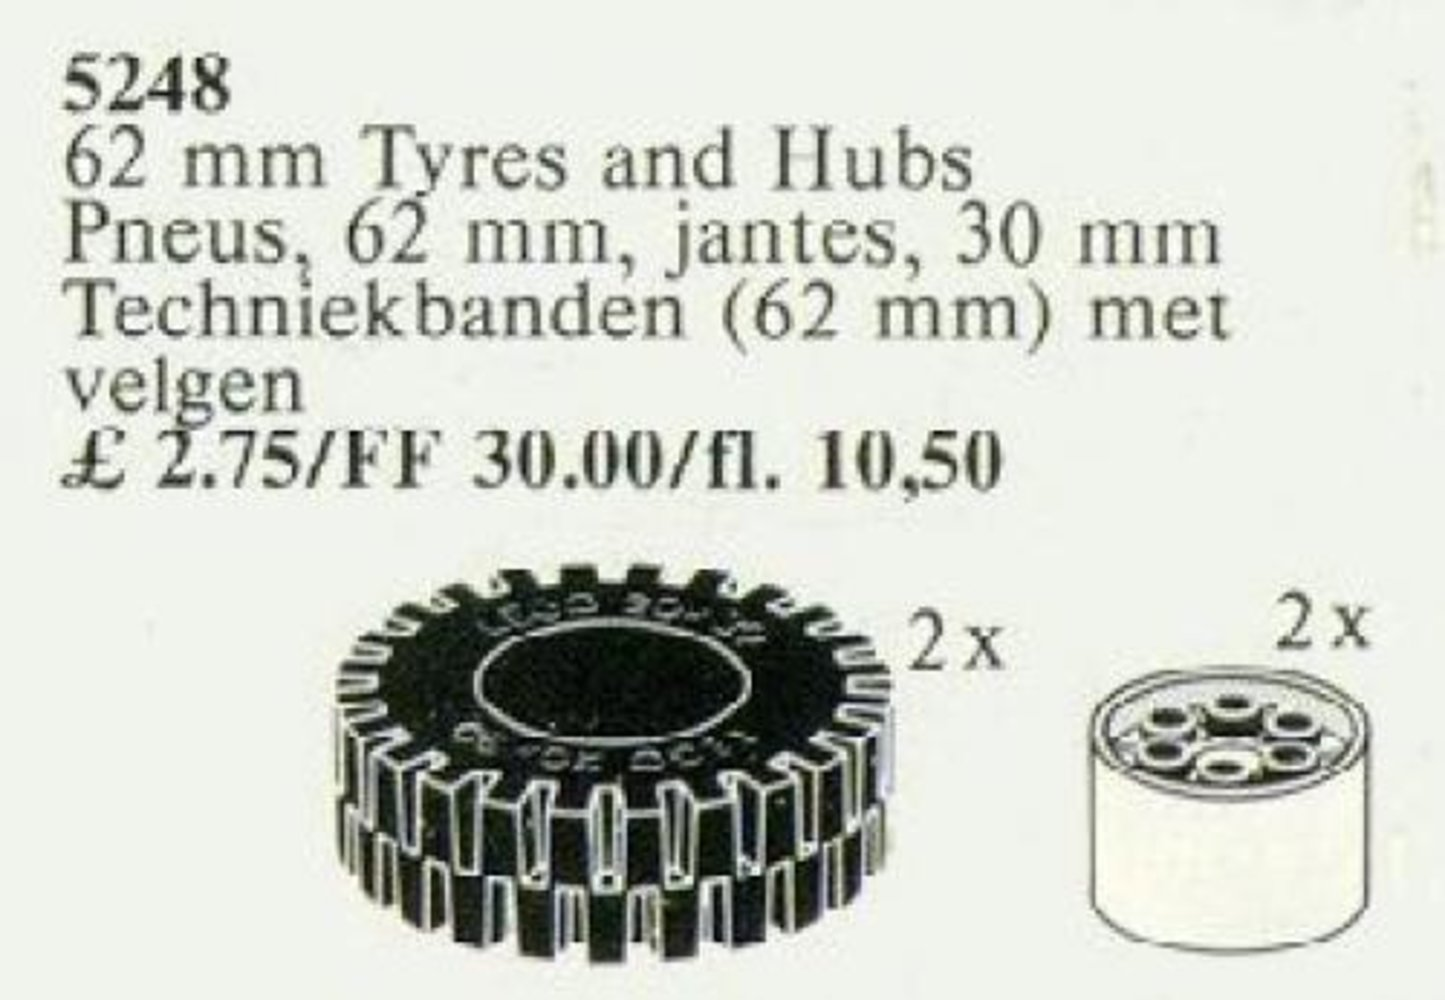 62 mm Tires and Hubs / 62 mm Tyres and Hubs